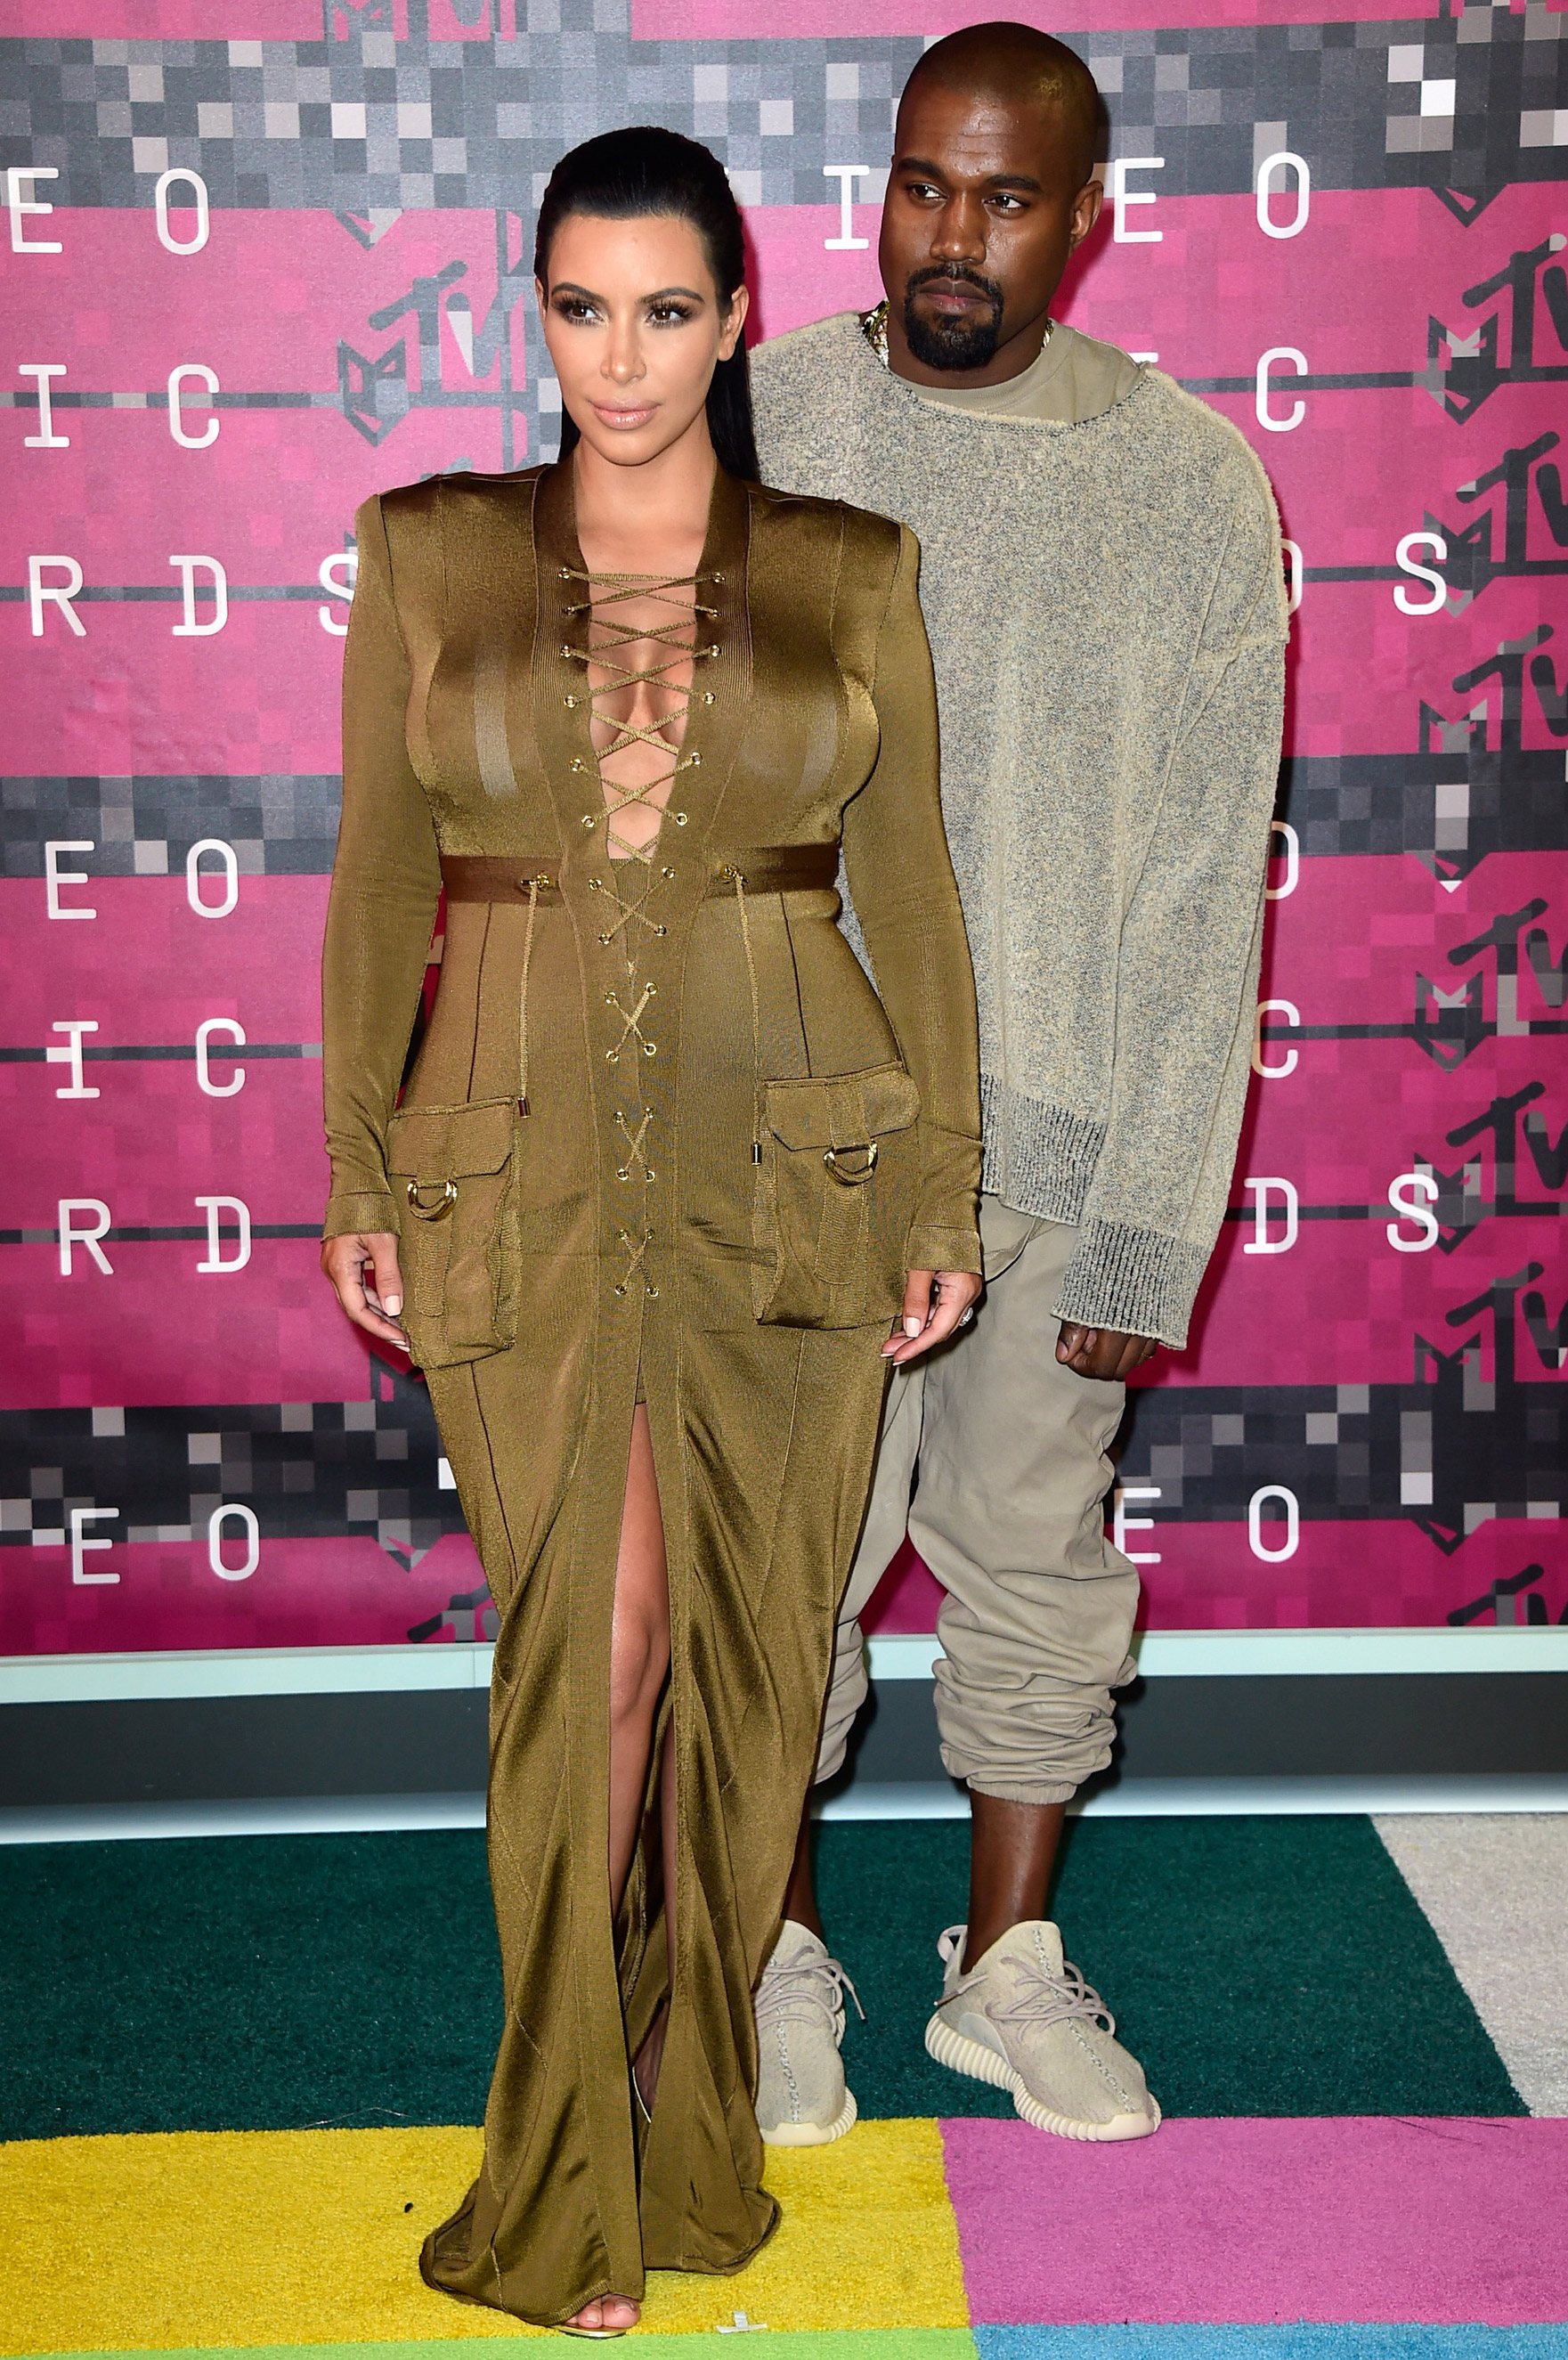 From left: Kim Kardashian and Kanye West arrive at the 2015 MTV Video Music Awards at Microsoft Theater on Aug. 30, 2015 in Los Angeles.